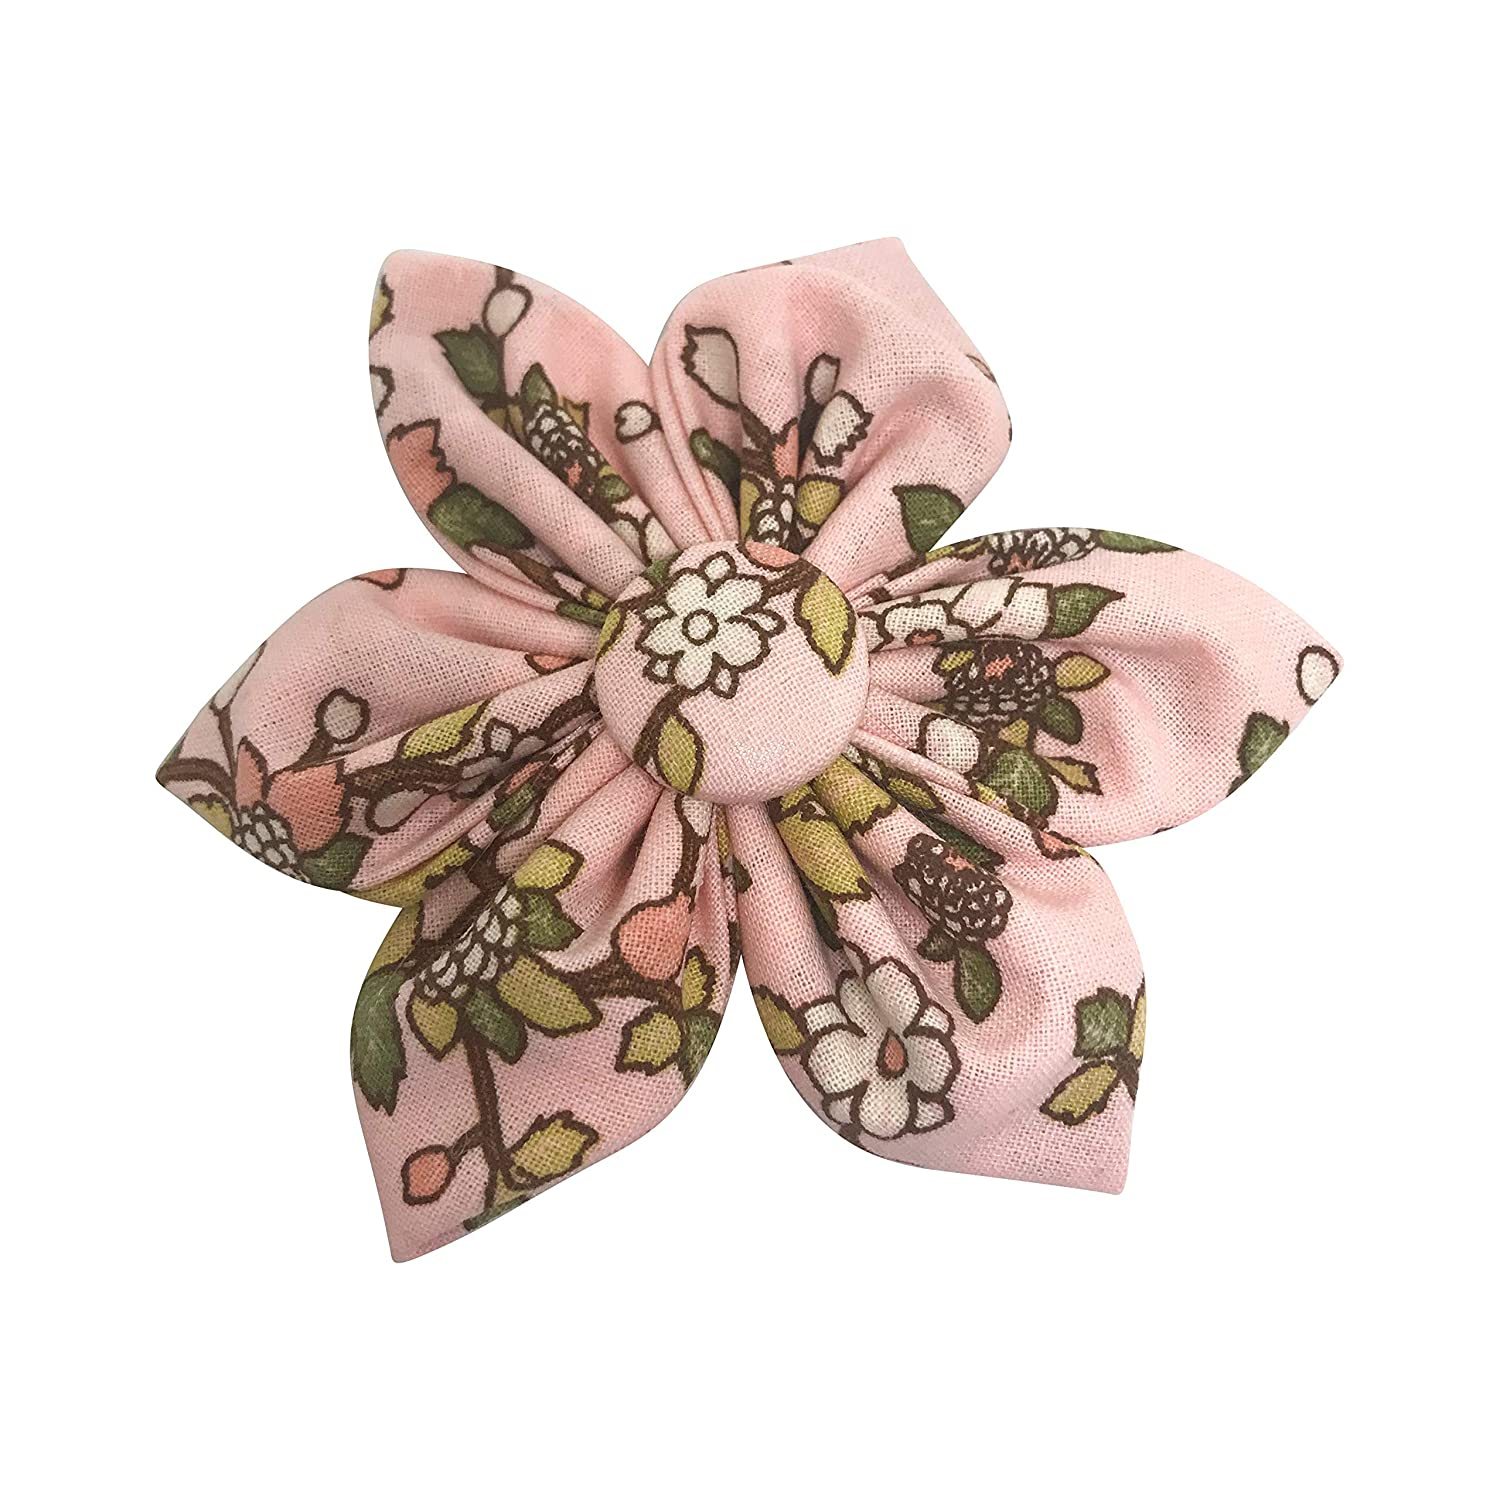 Handmade Challenge the lowest price of Japan ☆ Flower Girls 2021 new Hair Bow Clip Alligator with